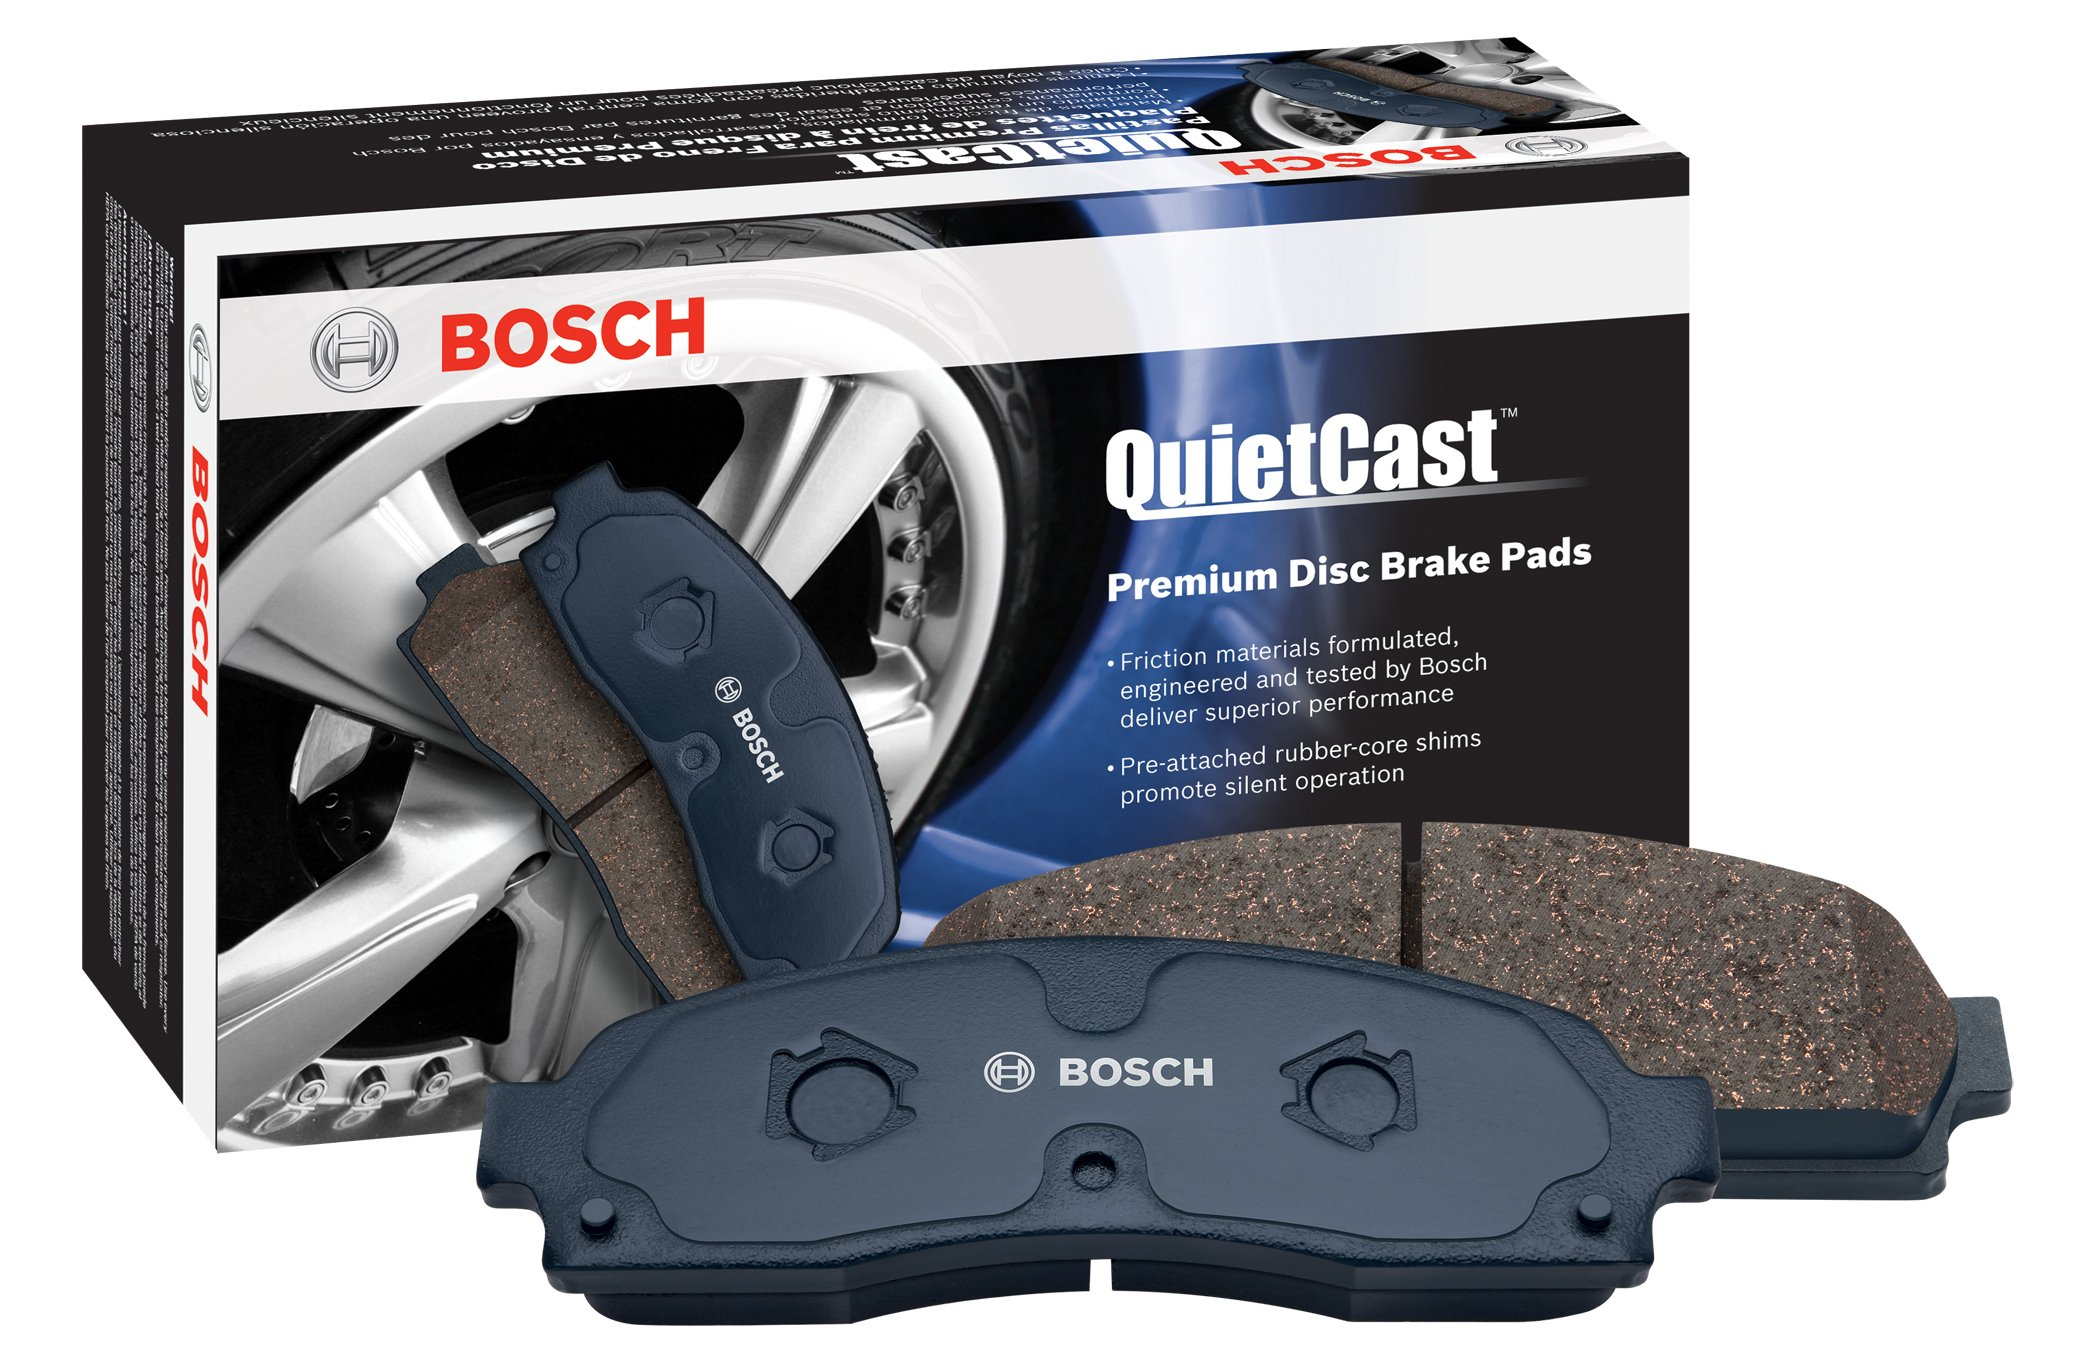 Bosch BP1263 QuietCast Premium Semi-Metallic Disc Brake Pad Set For Land Rover: 2006-2009 Range Rover, 2006-2009 Range Rover Sport; Front